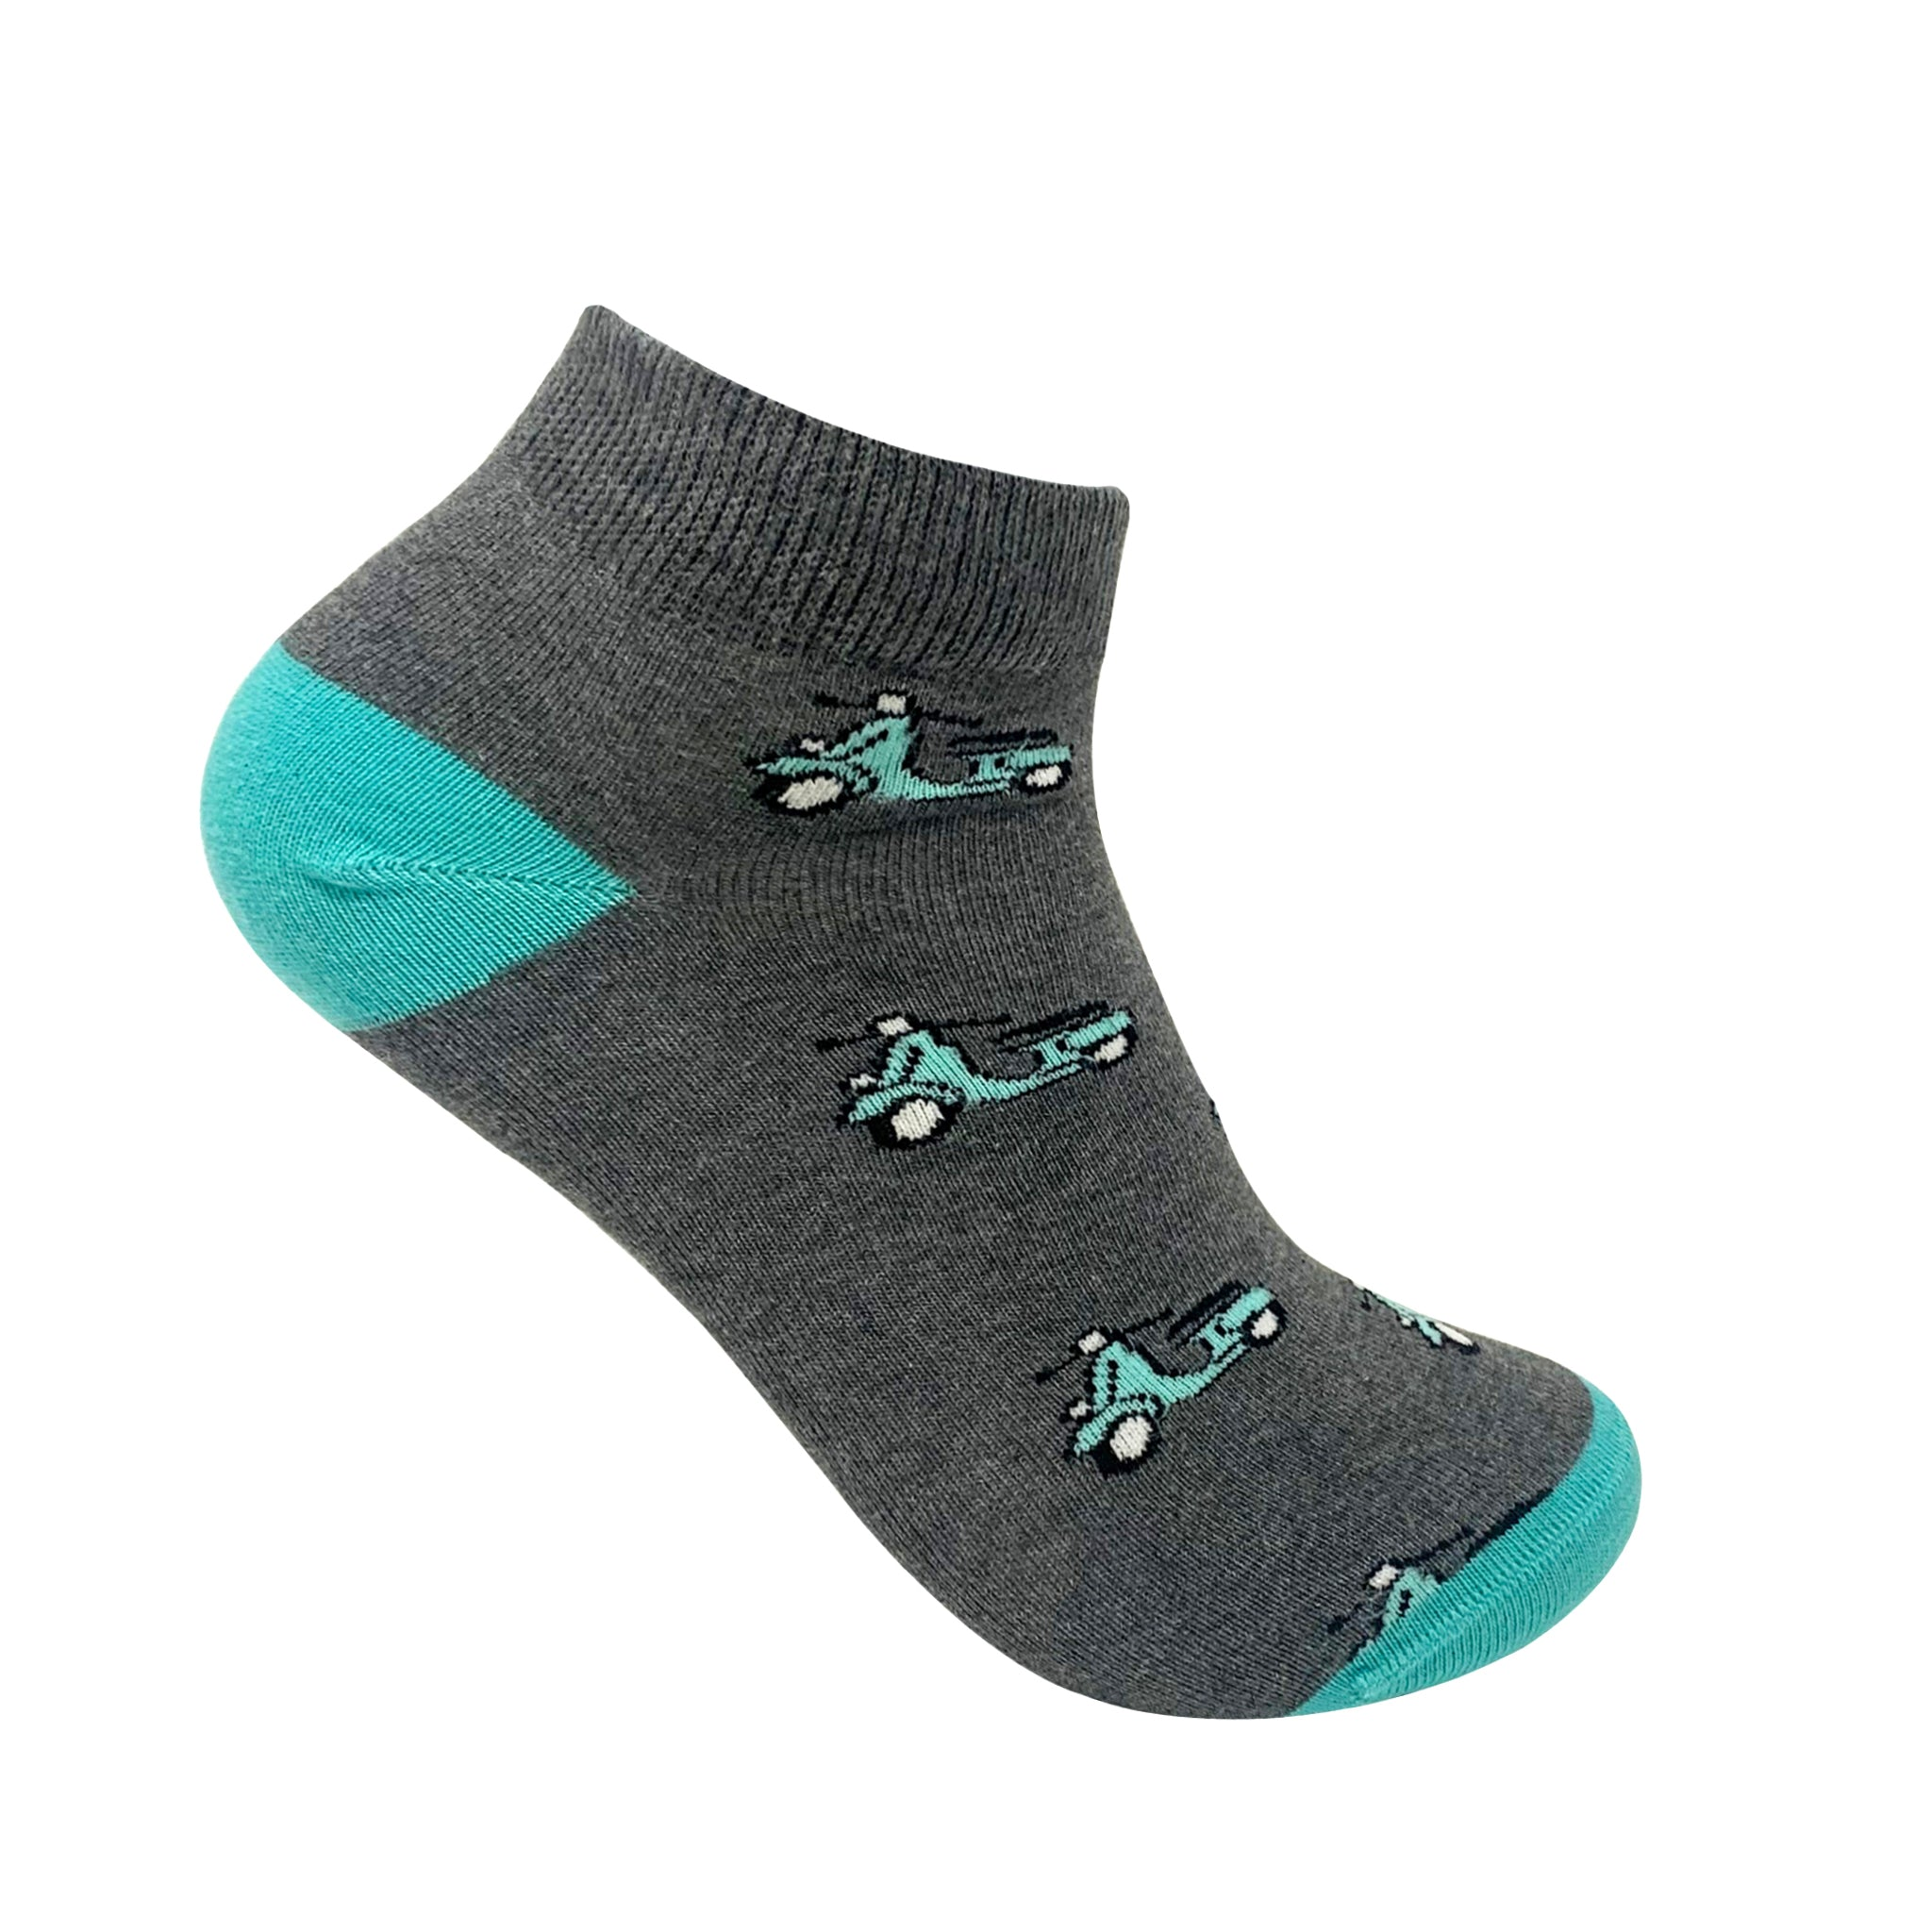 Scoot-Over Ankle Socks For Men